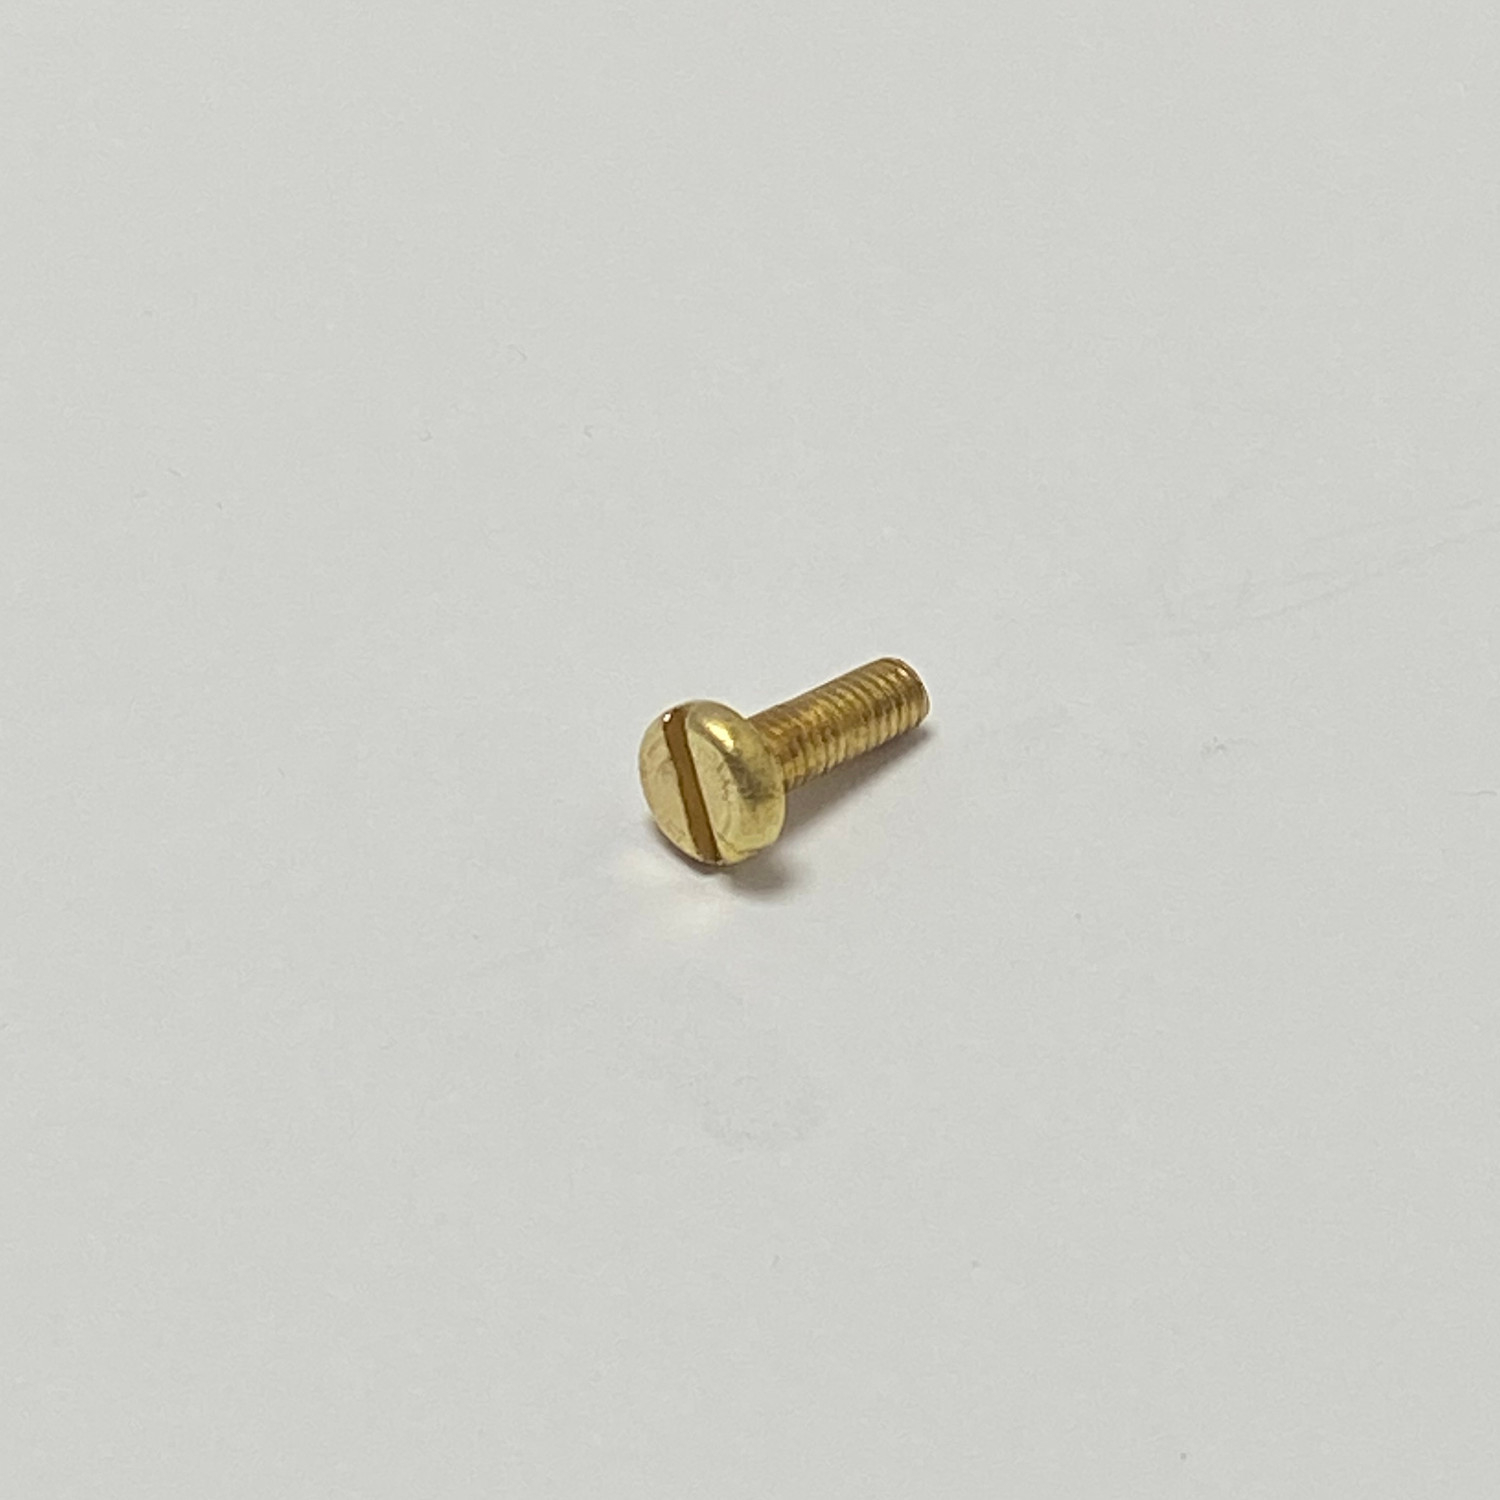 M5 X 25 BRASS SLOTTED CHEESE SCREWS